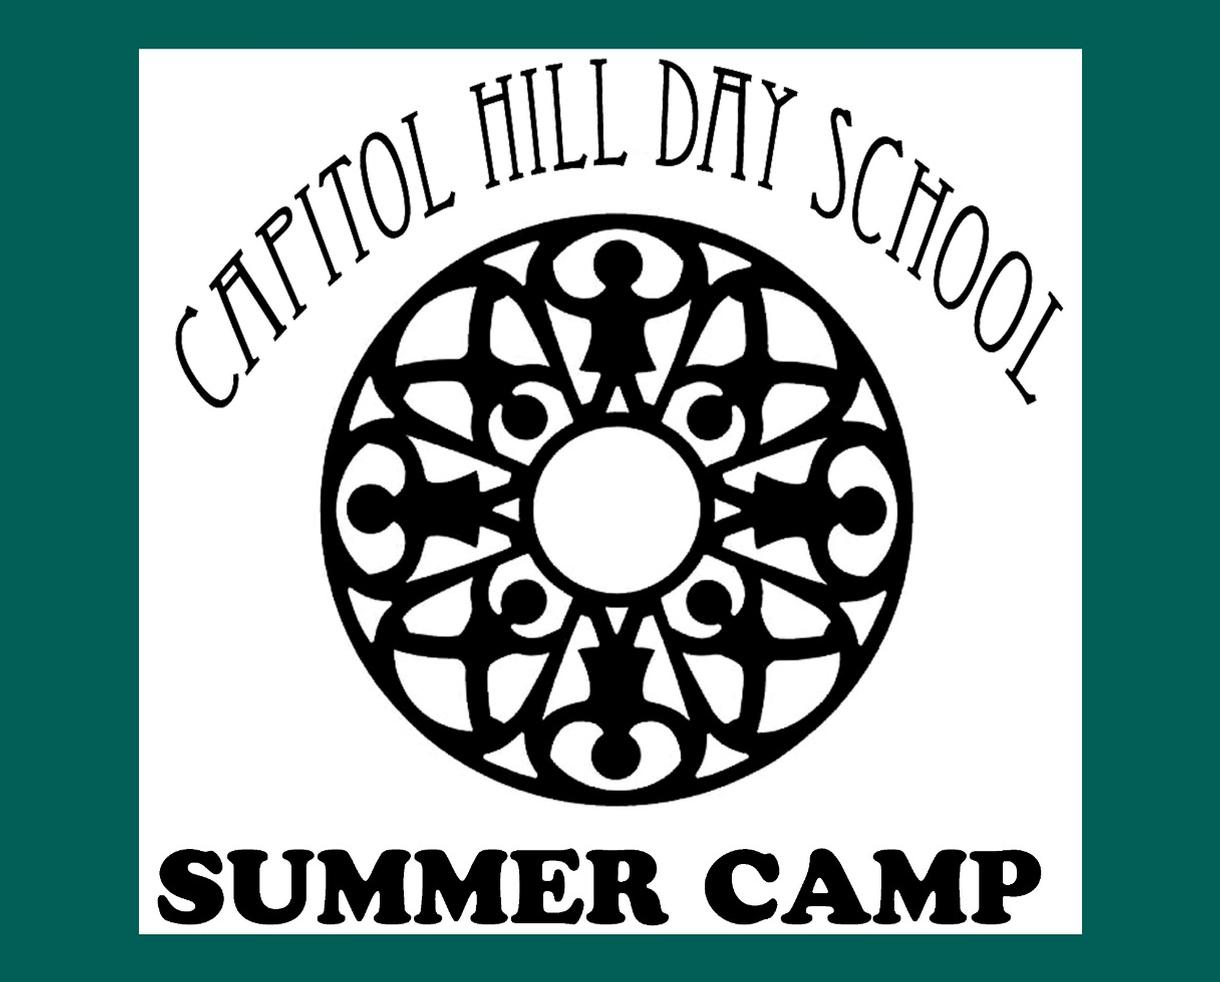 Capitol Hill Day School Camp